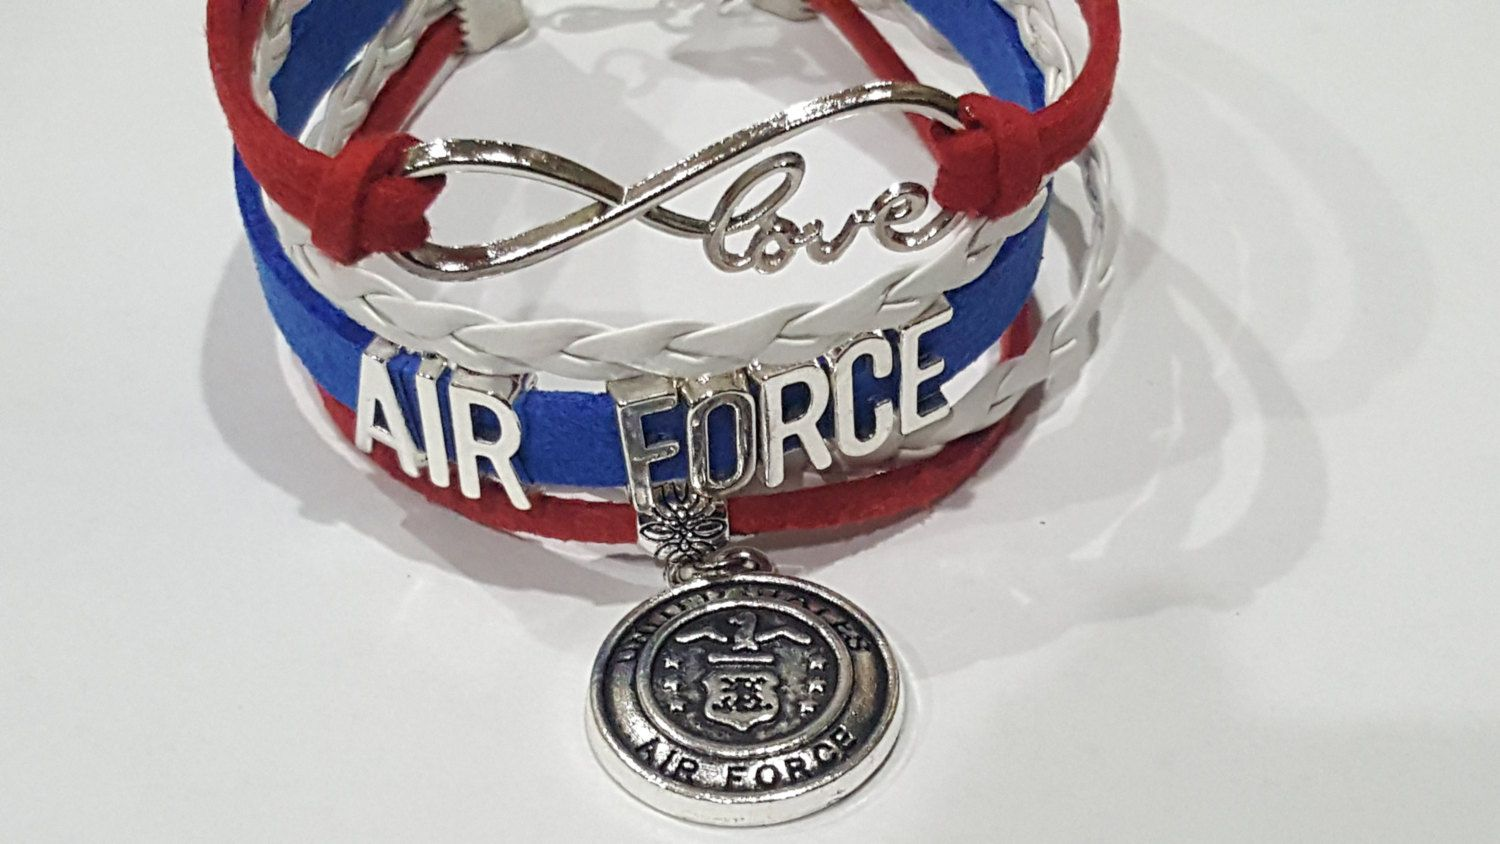 New Air Force Infinity Love Bracelet Red White Blue By Ecdazzle On Etsy Love Bracelets Infinity Love Stuff To Buy